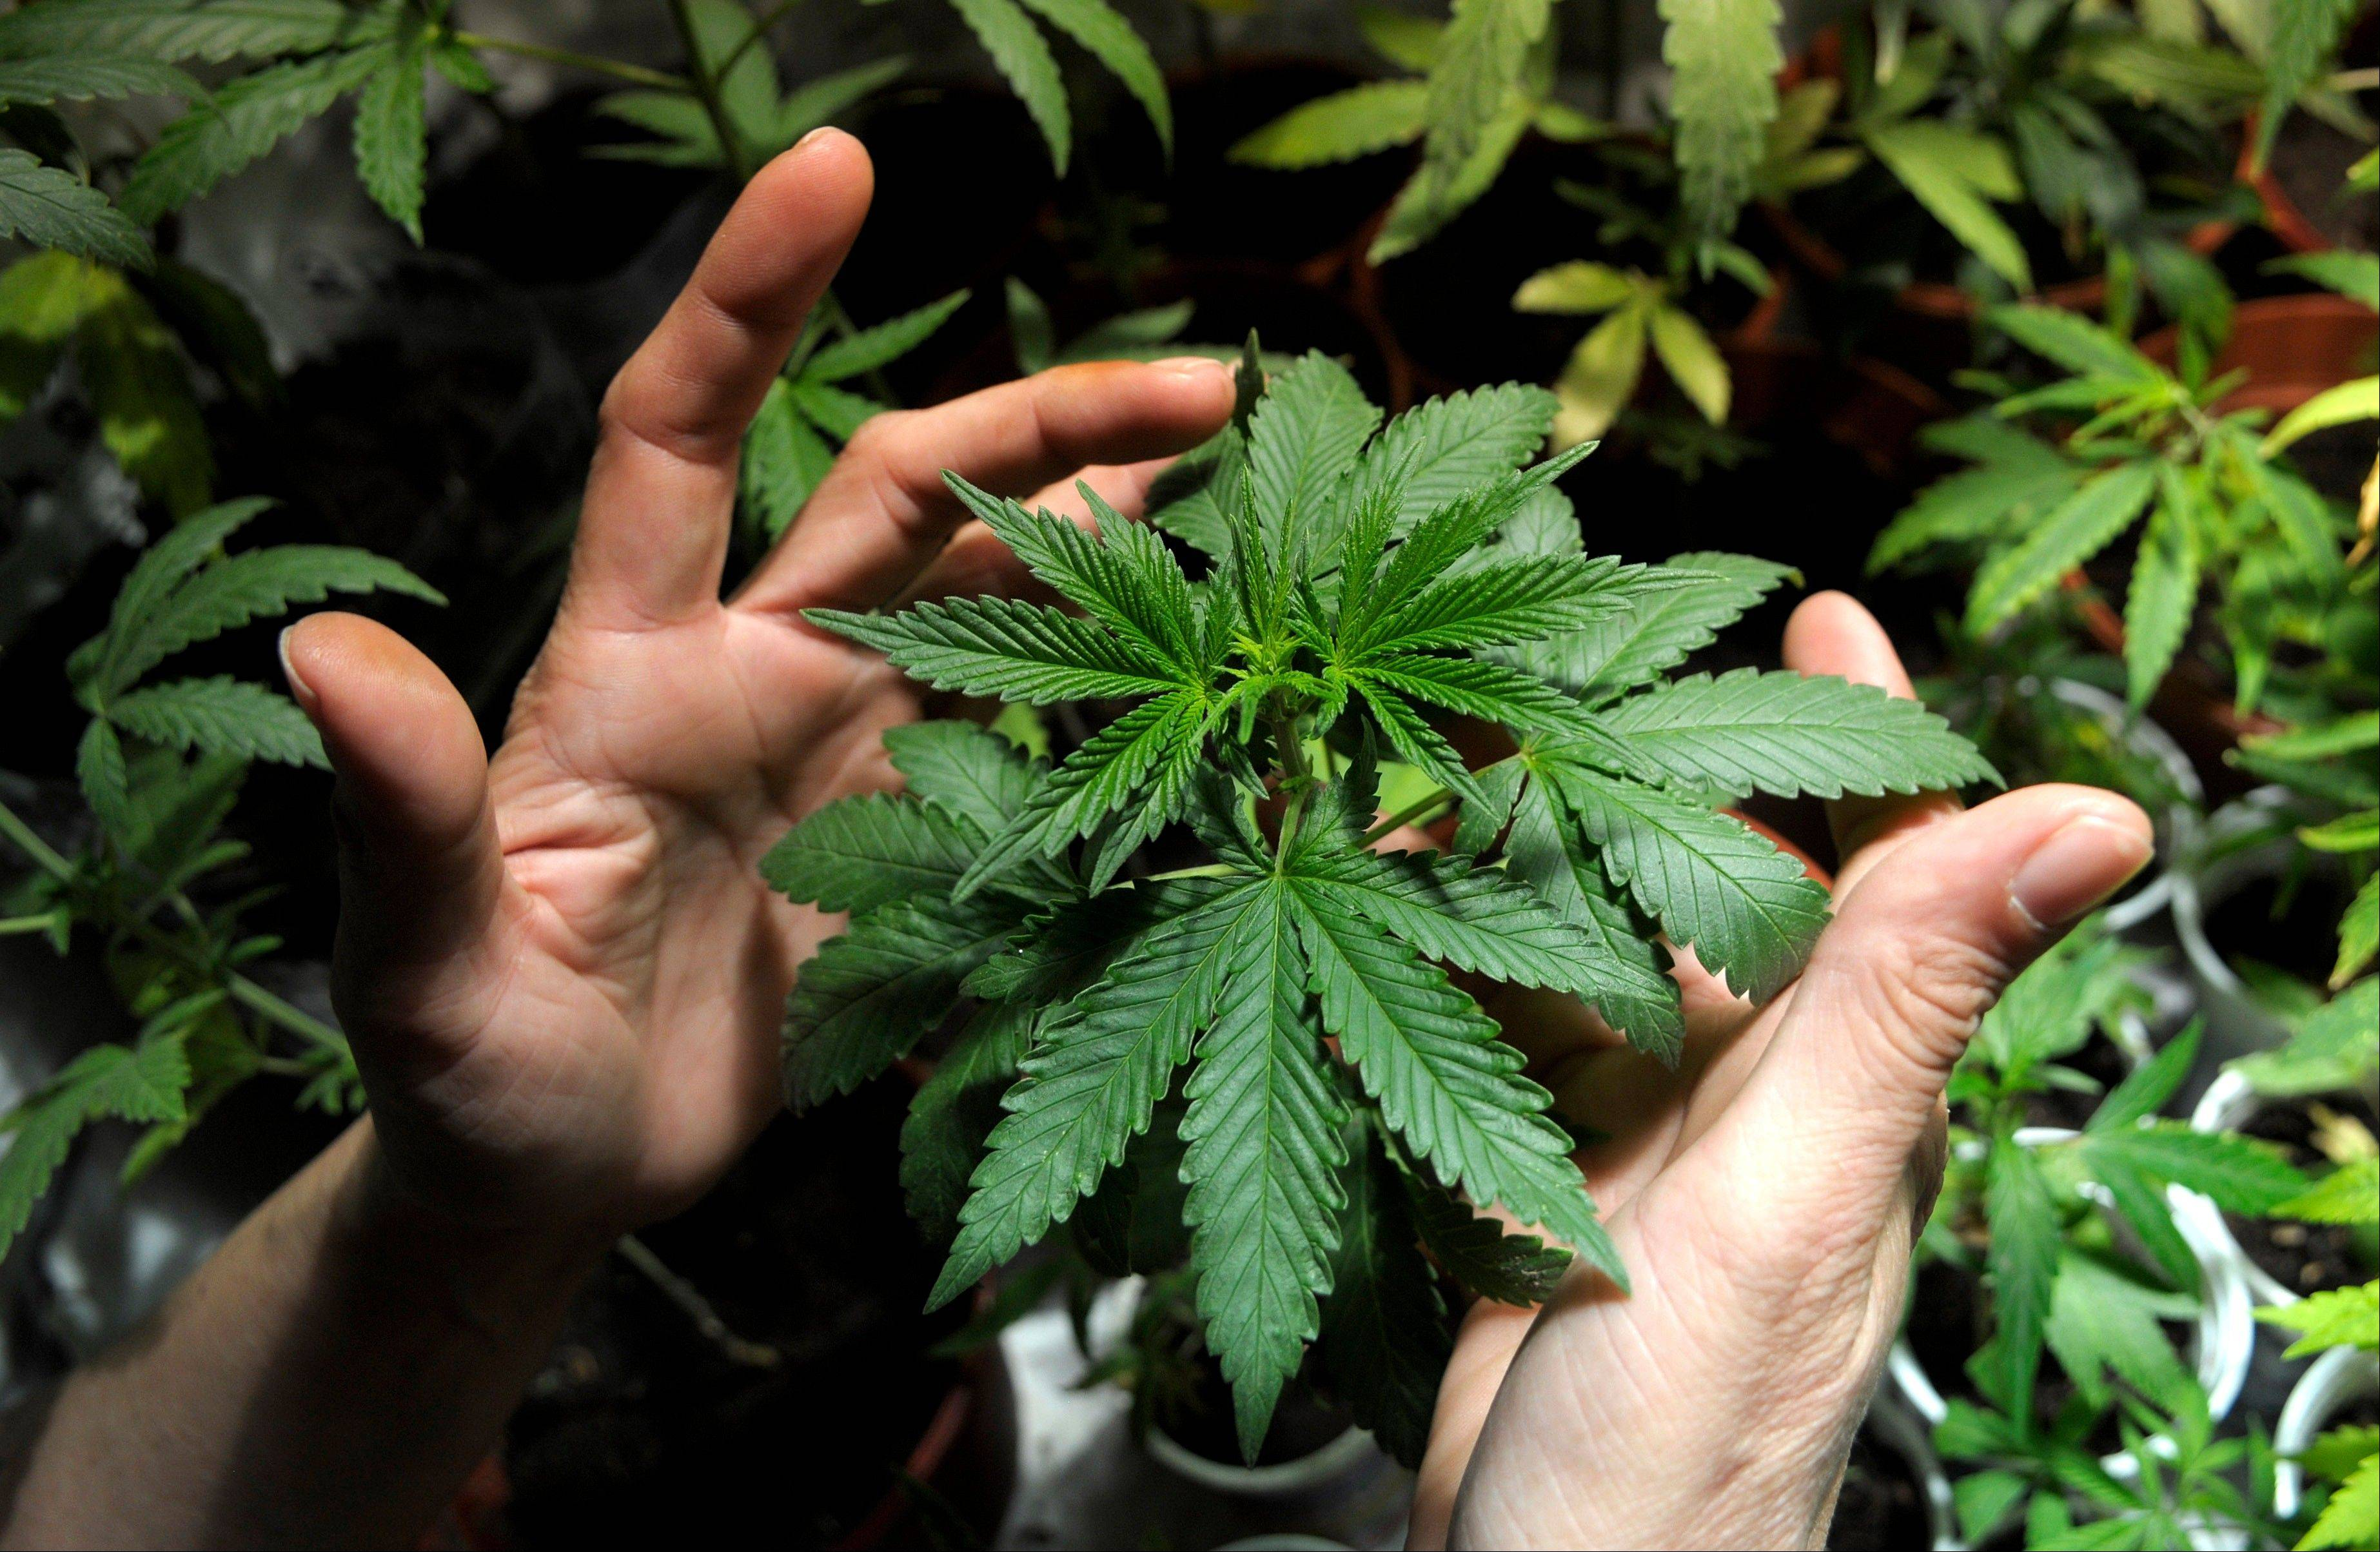 A marijuana grower shows plants he is cultivating with some friends in Montevideo, Uruguay.